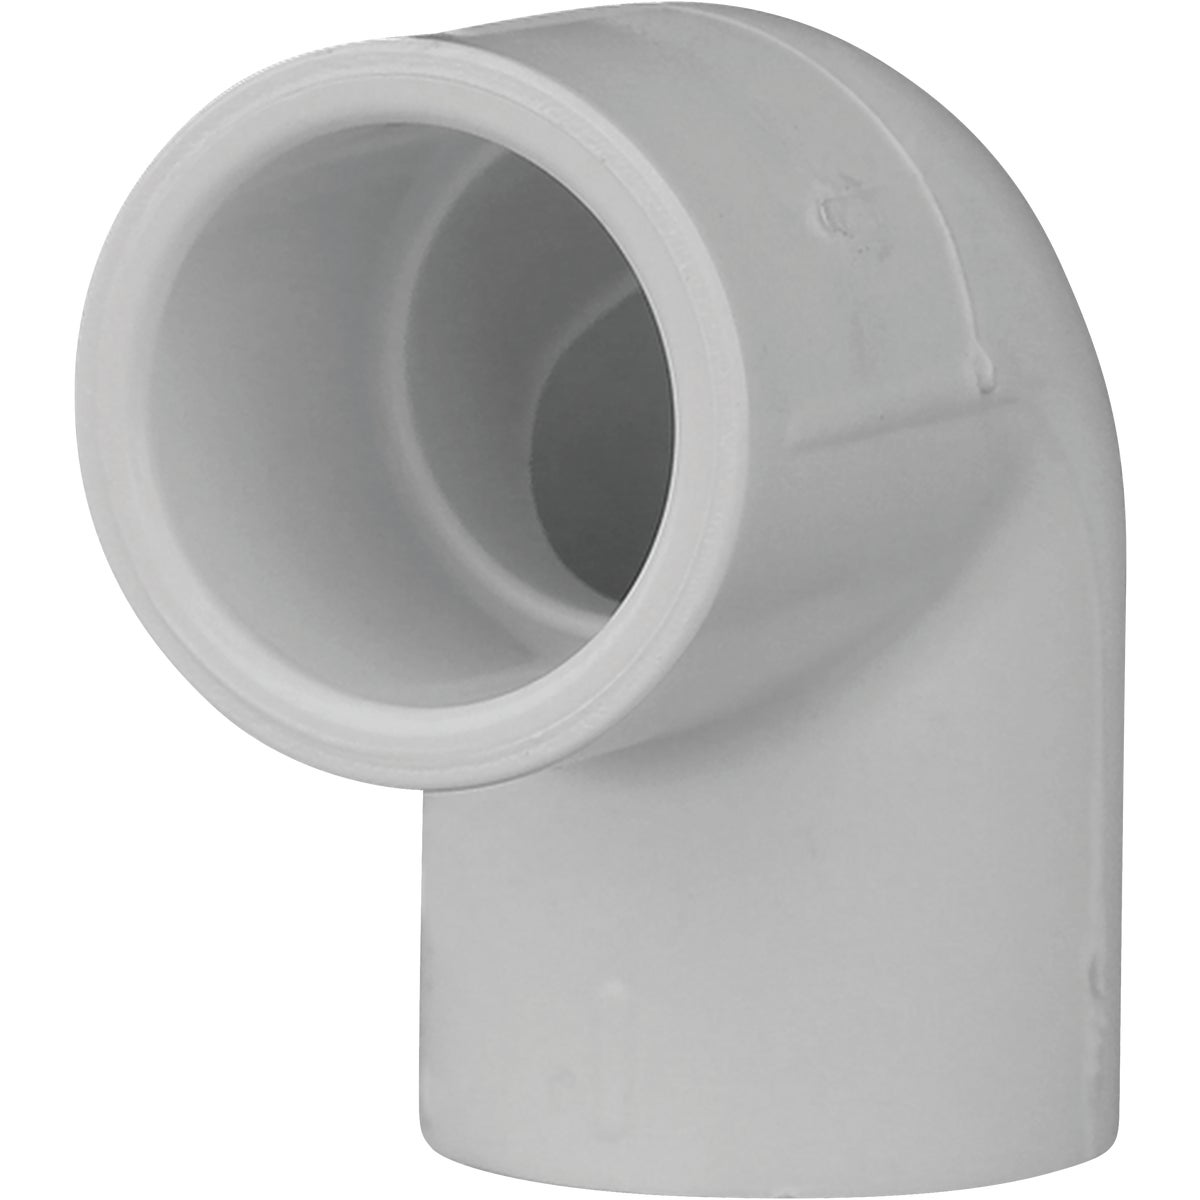 "1/2"" SCH40 SXS 90D ELBOW - 30705 by Genova Inc"